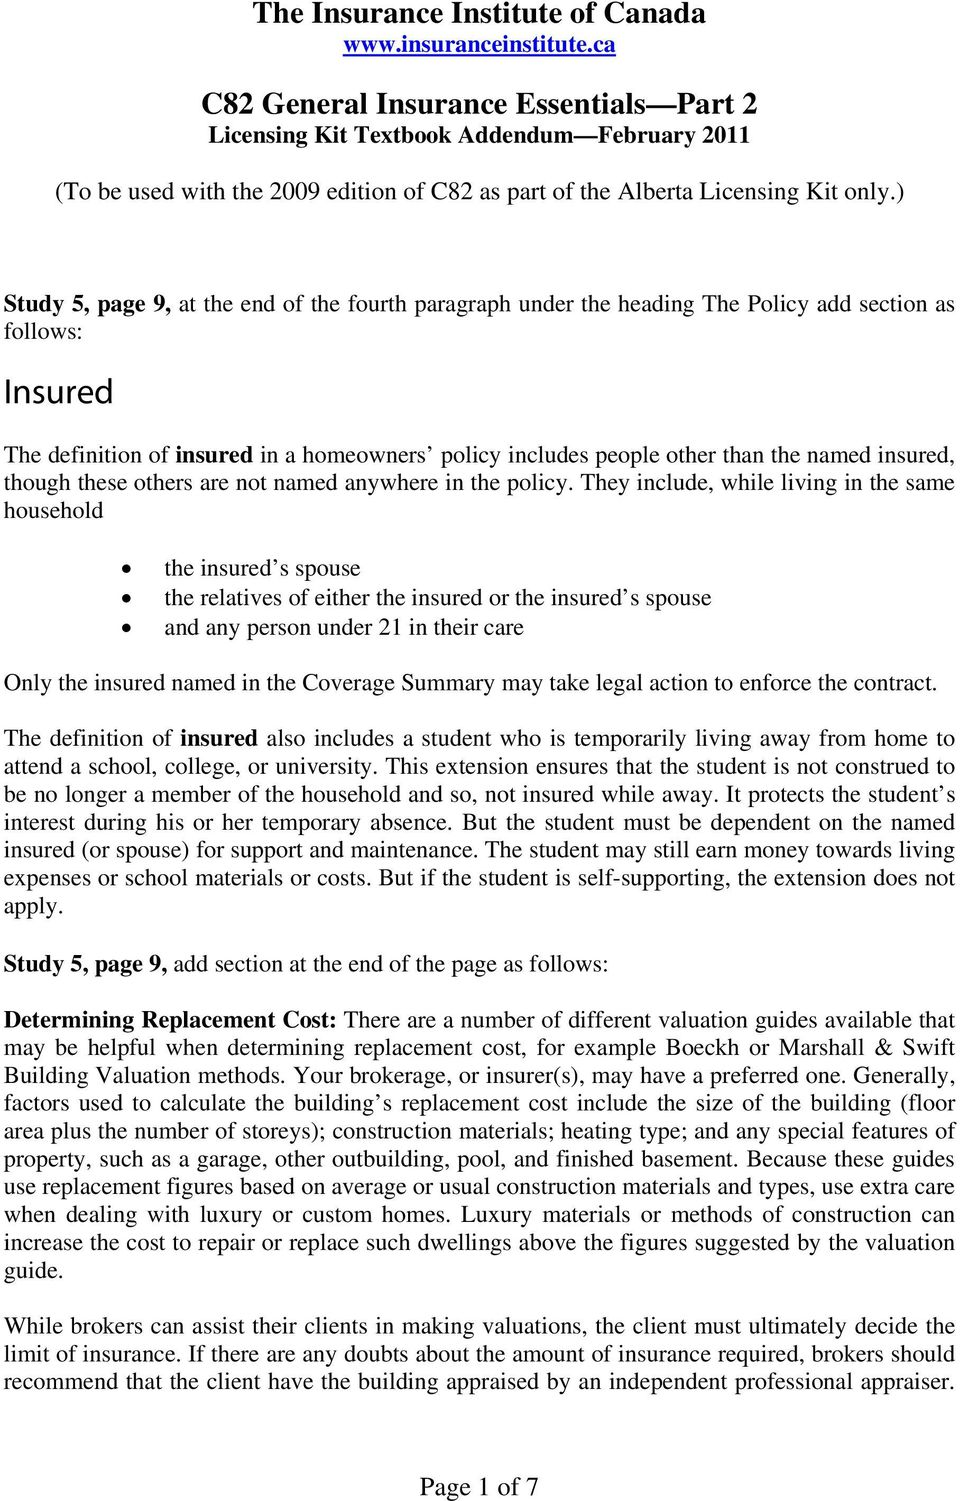 ) Study 5, page 9, at the end of the fourth paragraph under the heading The Policy add section as follows: Insured The definition of insured in a homeowners policy includes people other than the